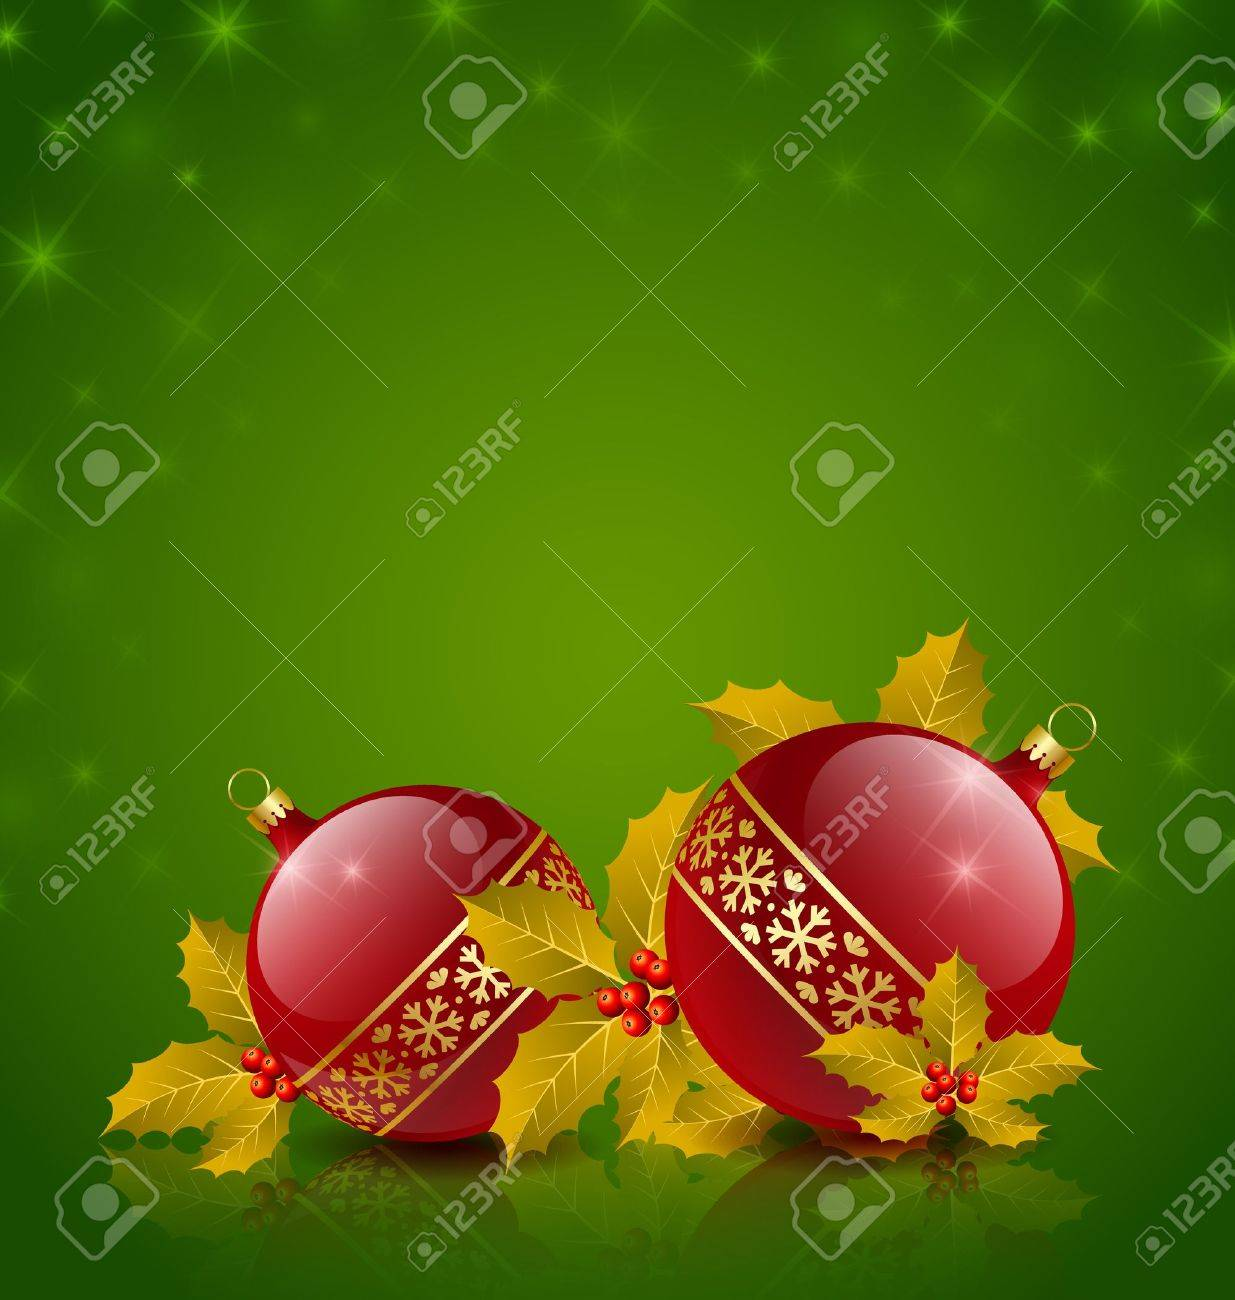 Christmas balls with holly on starry green background Stock Vector - 14765683